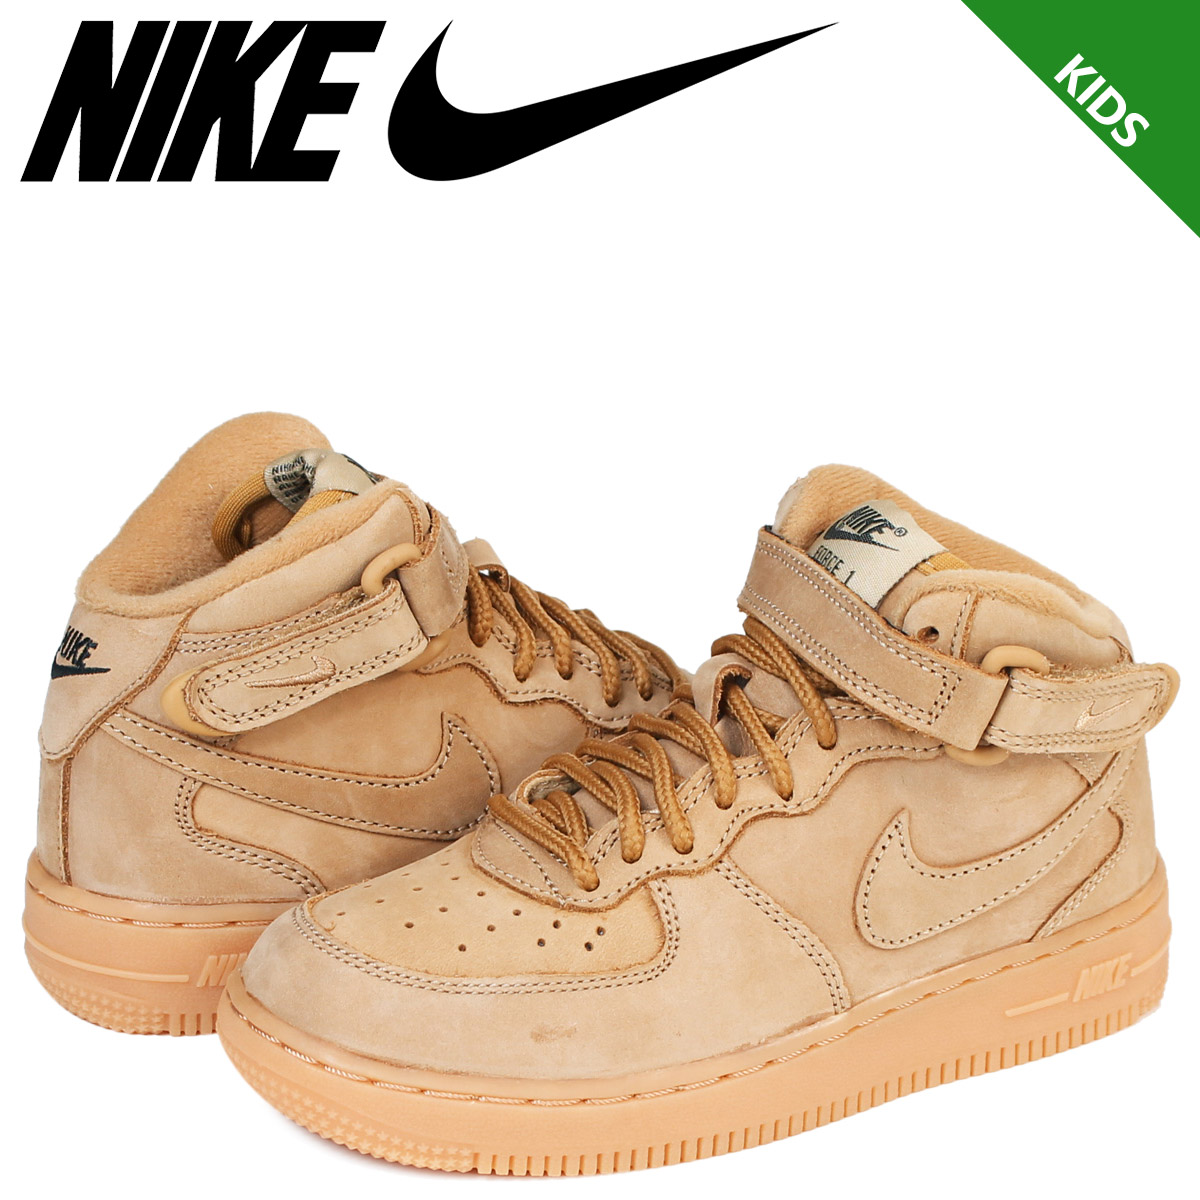 e8dac4aca7 ... coupon code for nike nike air force 1 mid kids sneakers air force 1 wb  ps ...